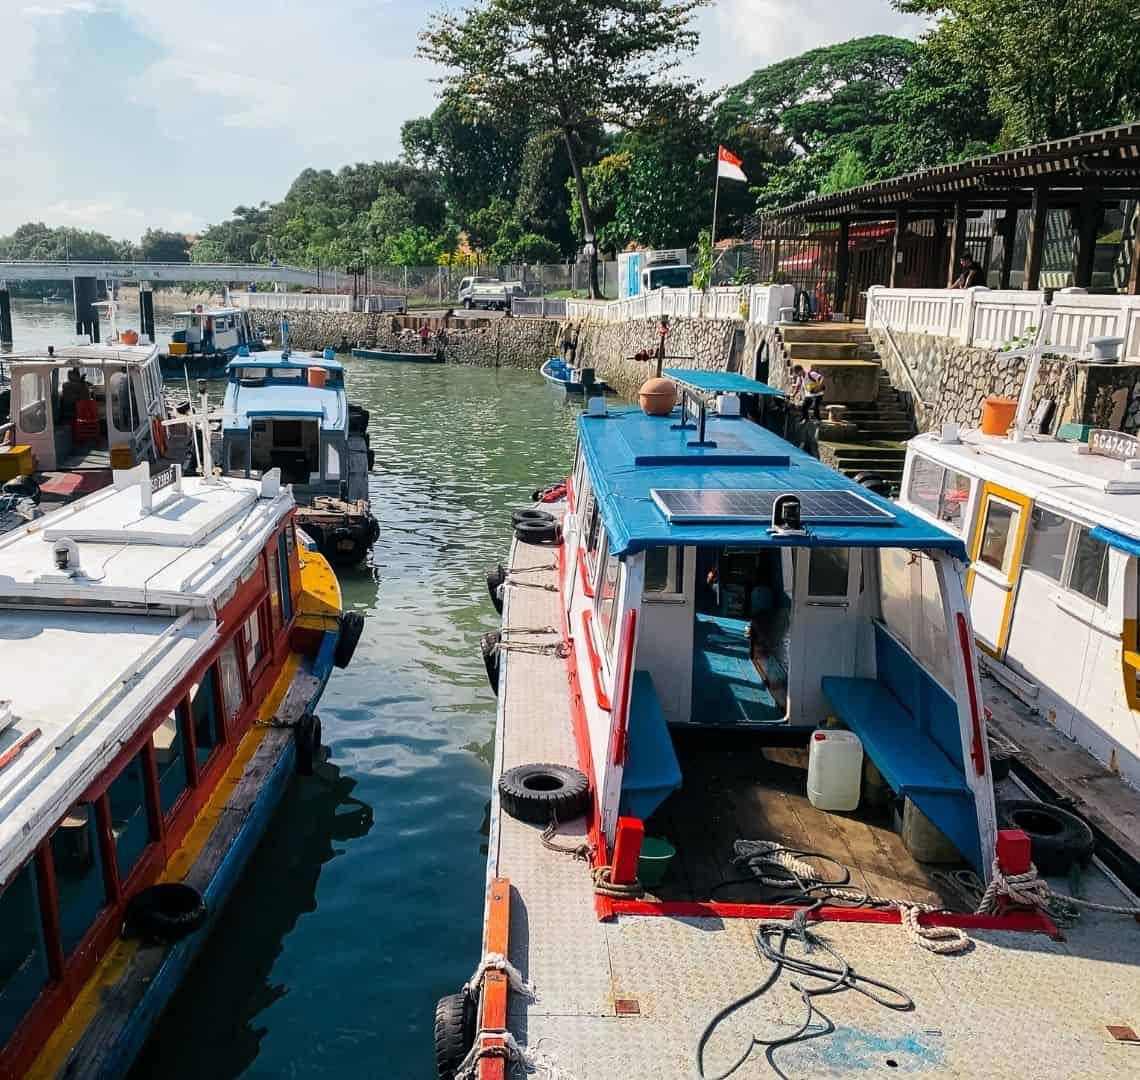 Several bumboats on the water at the jetty at Changi Point Ferry Terminal. They are brightly painted in blues, reds and yellows.